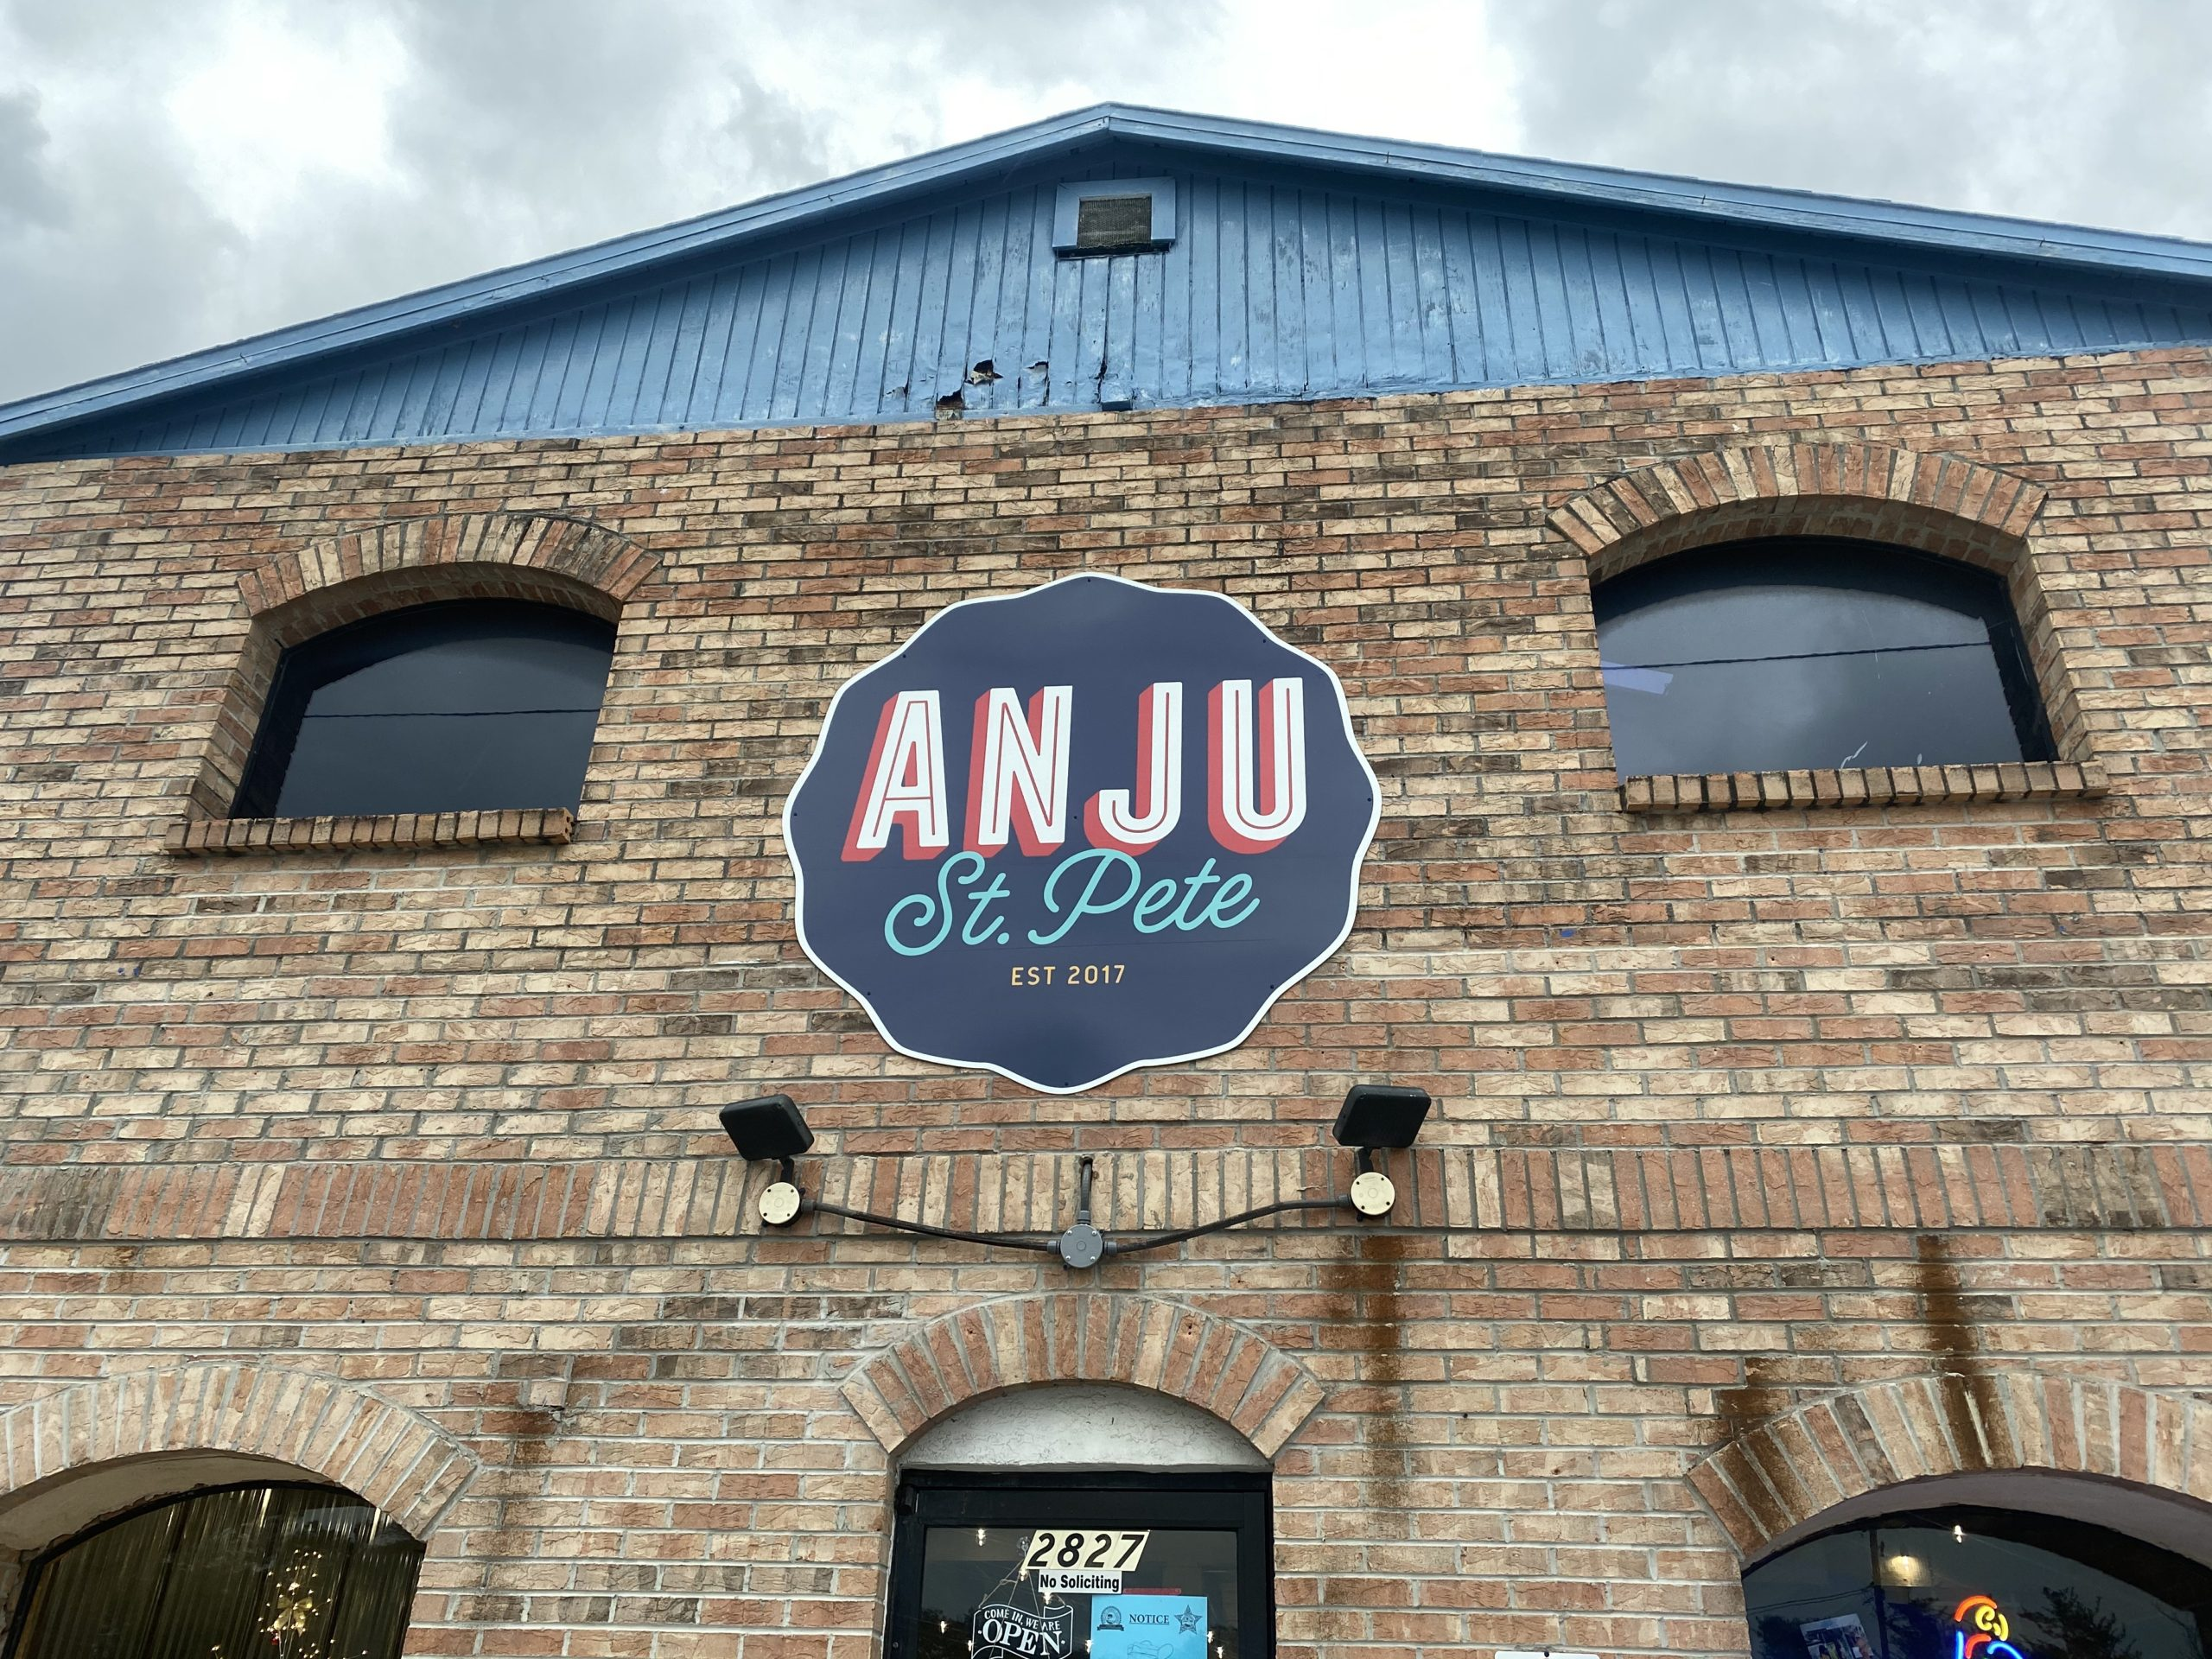 ANJU Exterior Location in St Petersburg